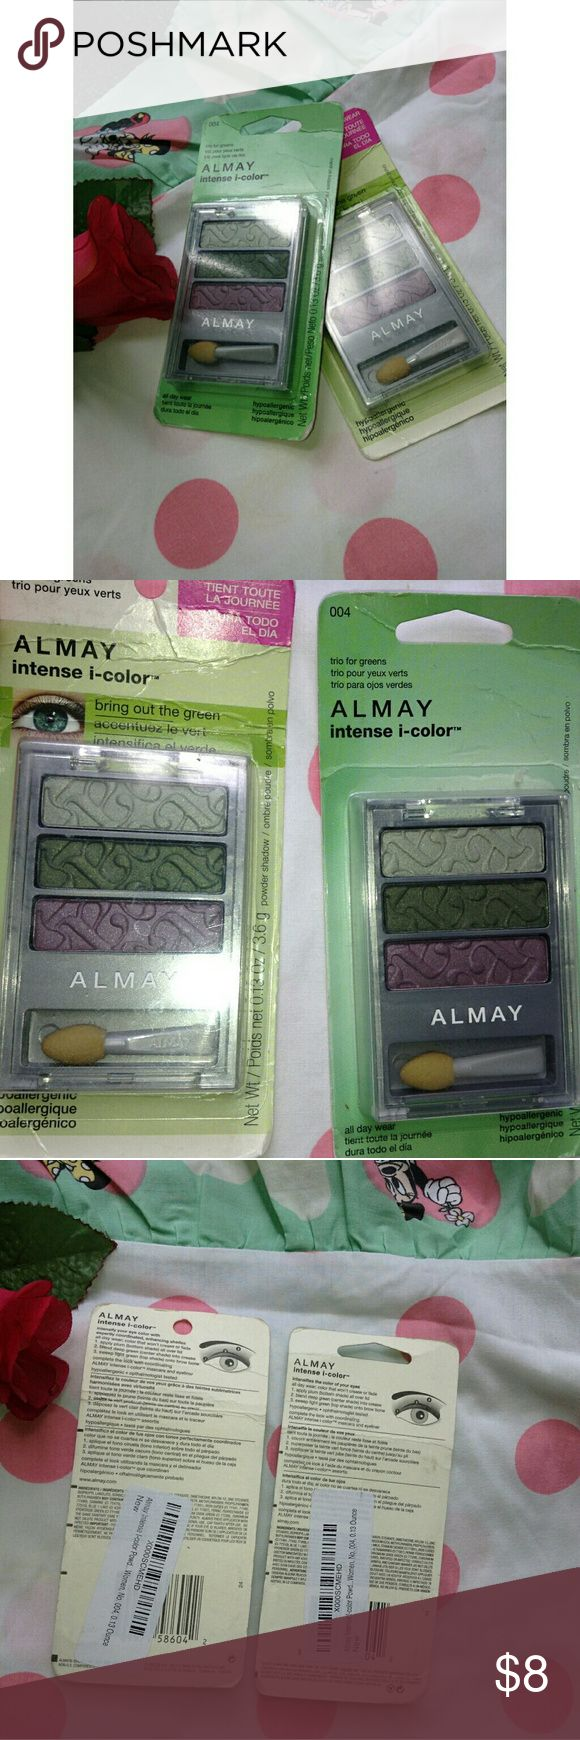 🦄 ALMAY EYESHADOW WITH CHOKER INCLUDED ♡  Almay eyeshadow palettes! Not open, brand new! Gorgeous eyeshadow colors! Beautiful to wear anytime of the day! Choker included!   Made of: N/A ♡ Fast Shipper: same day or next morning according to when purchased ? If have any questions.. please feel free to comment below - xoxo. Almay Makeup Eyeshadow